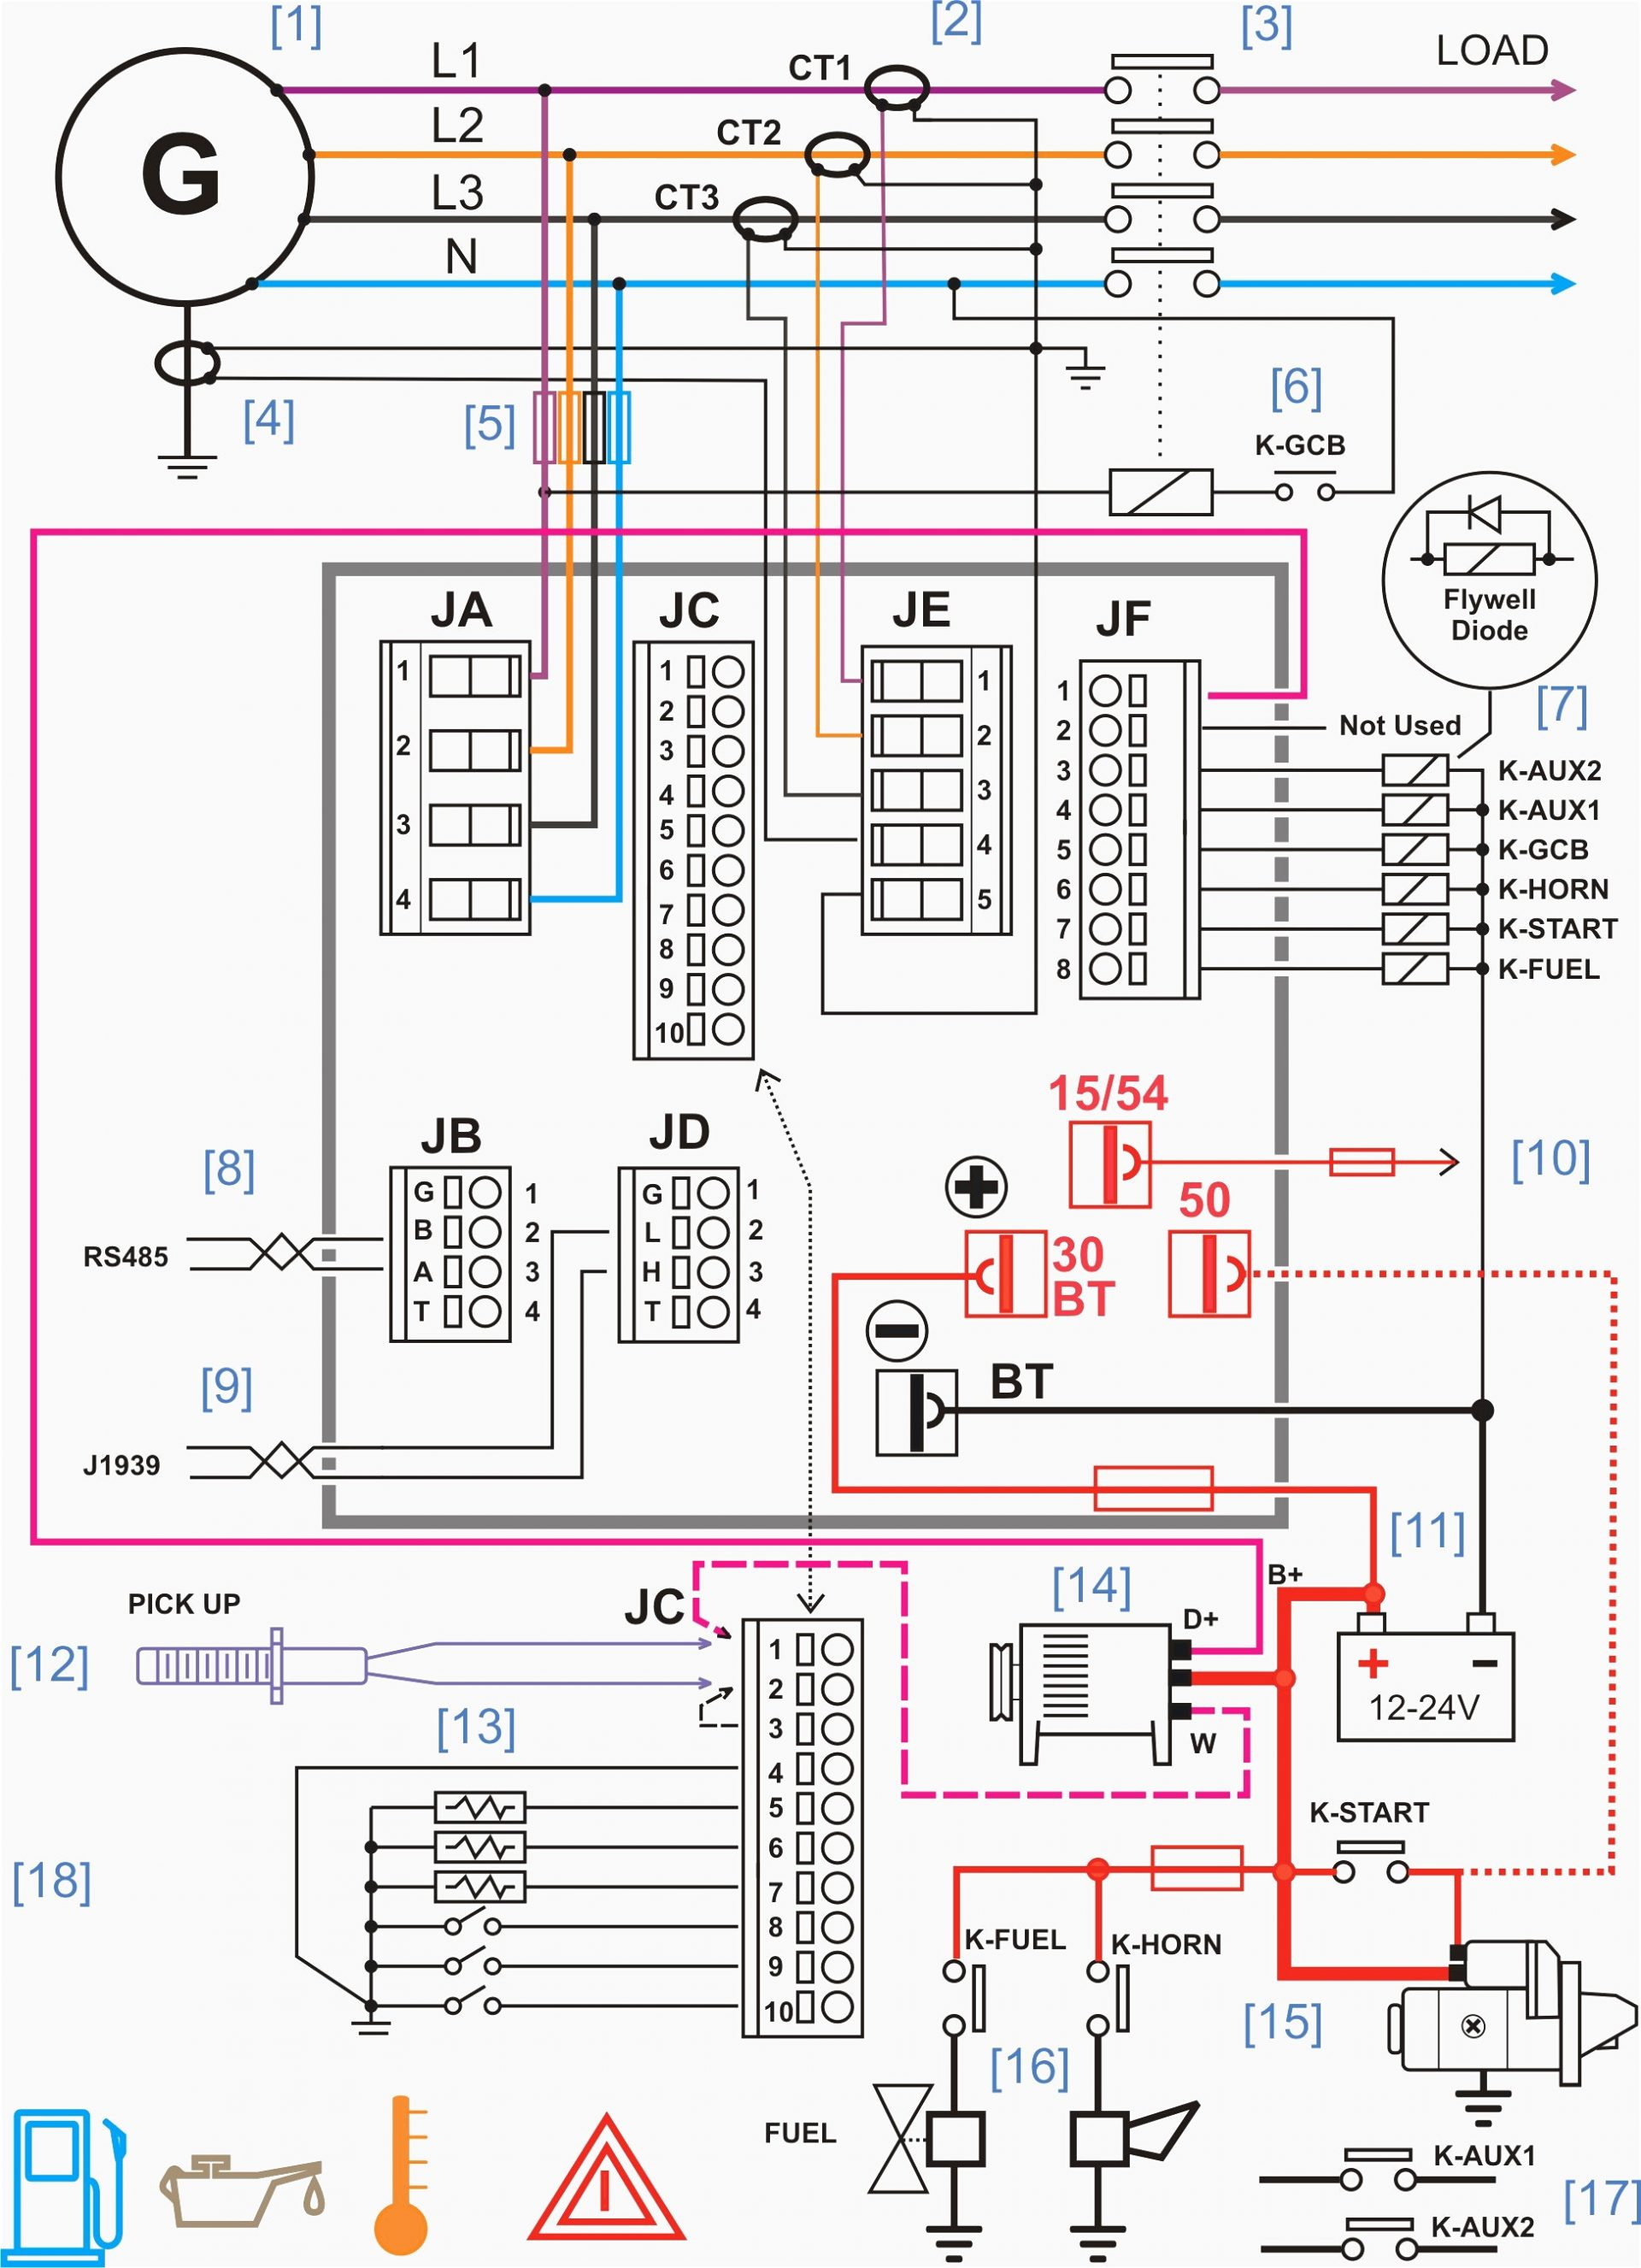 ooma wiring diagram Download-Lenel 1320 Wiring Diagram New Dry Contact Im33 Wiring Diagram New Page with Ooma Lenel Best 7-a